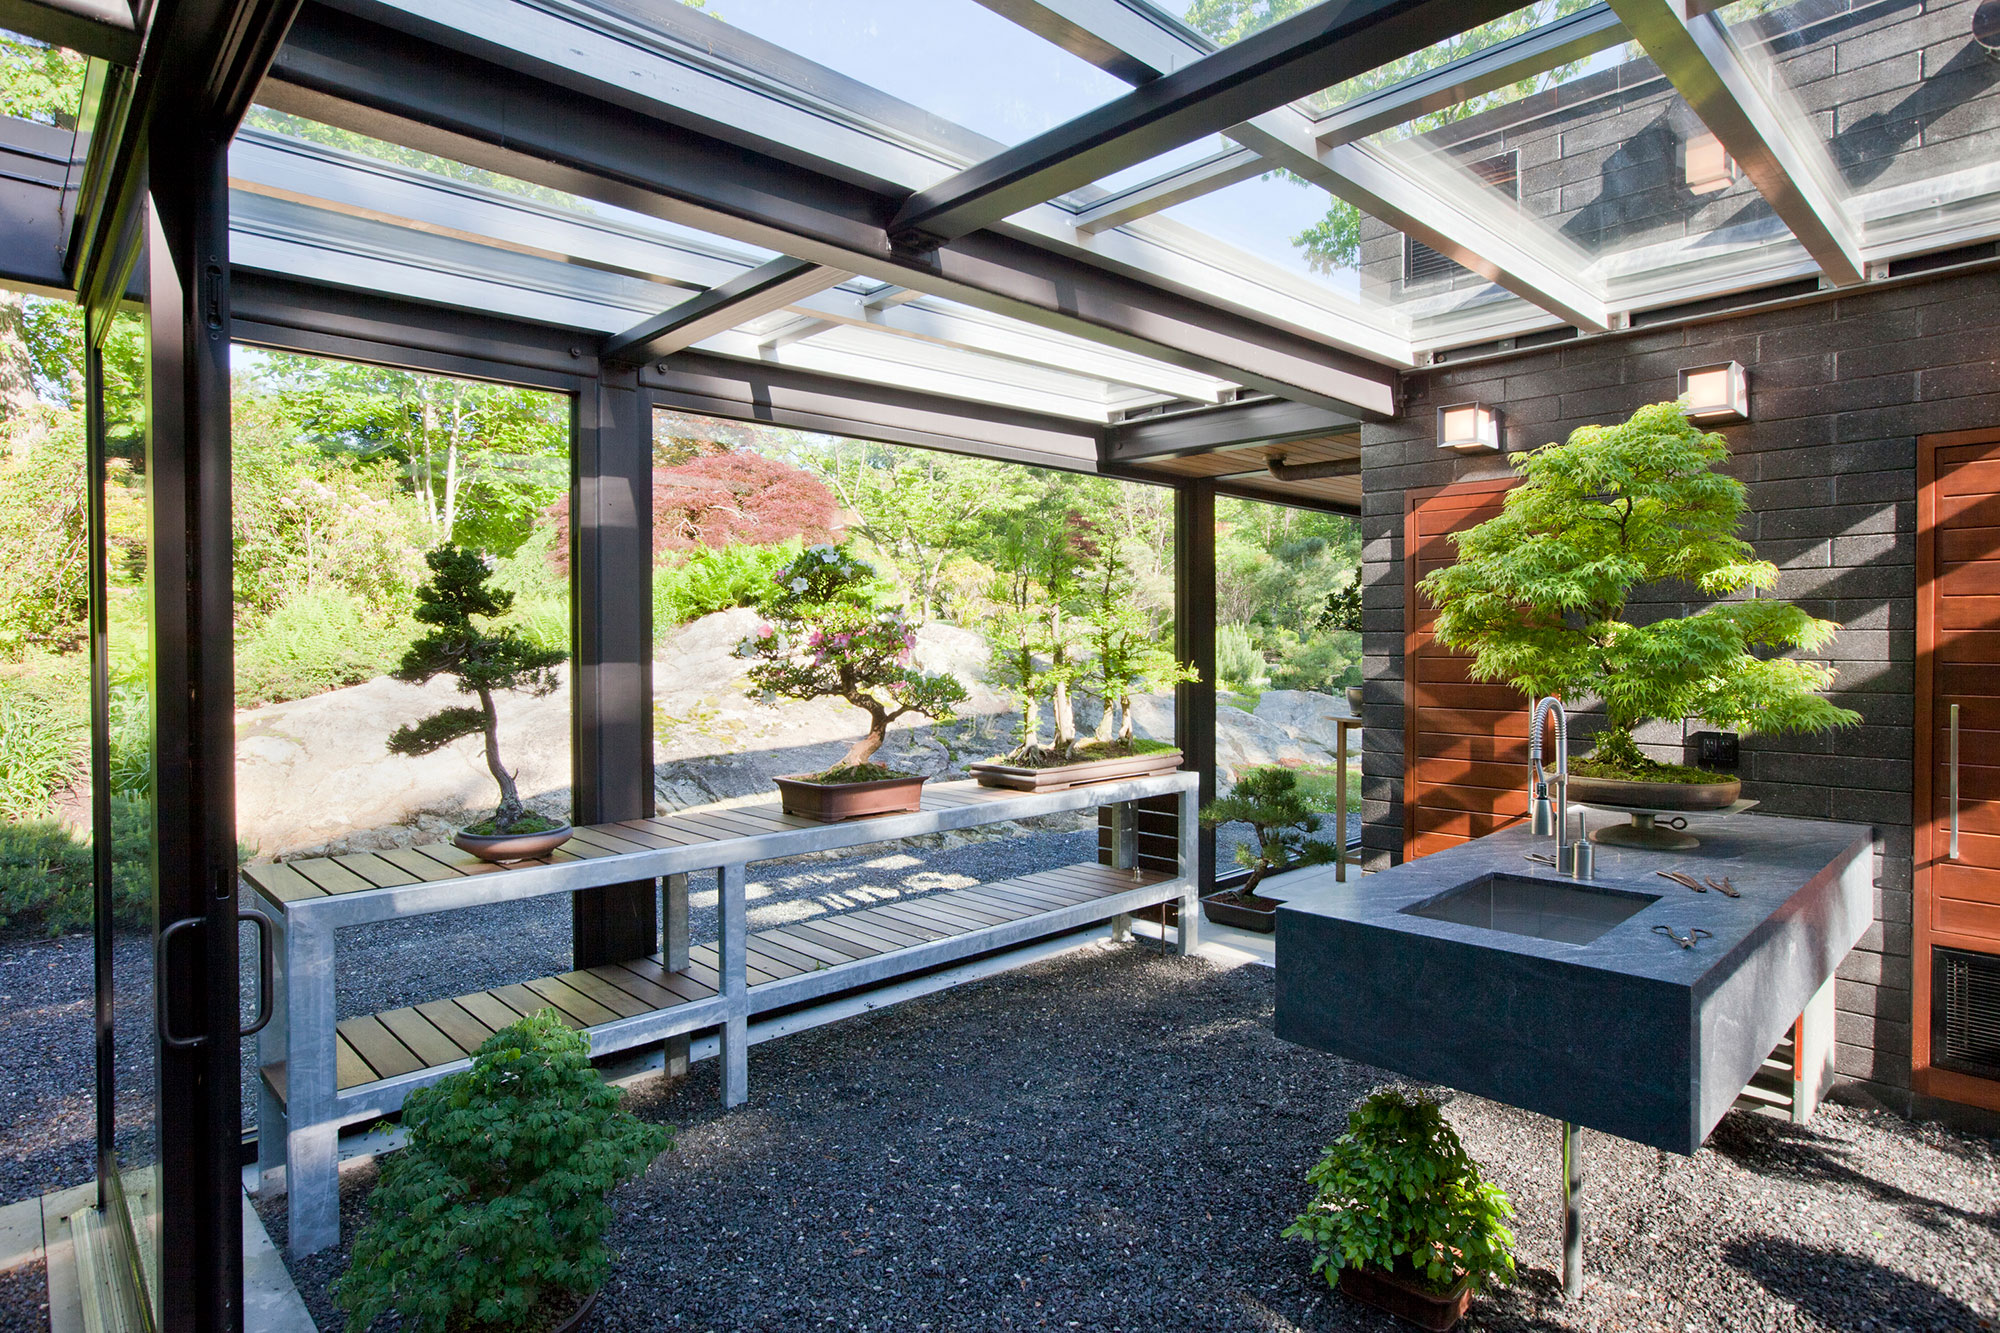 bonsai greenhouse with glass roof